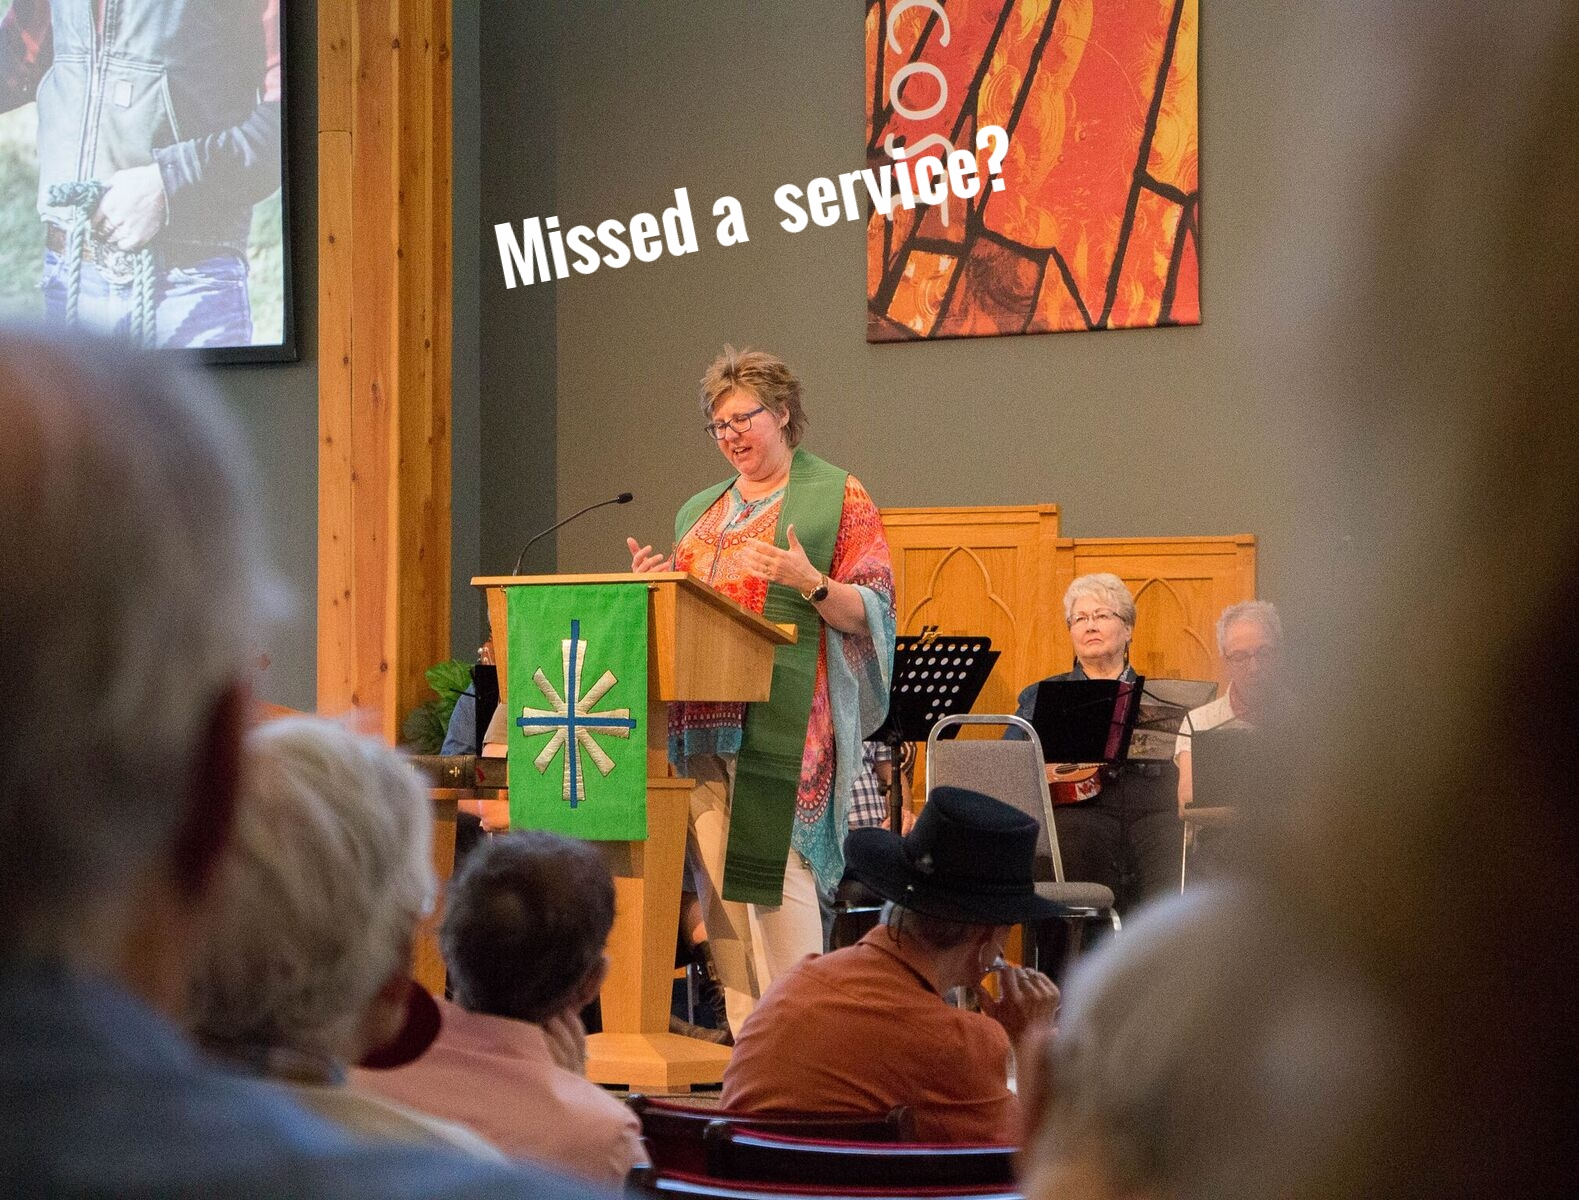 Missed a service? - Click here to listen to previous Sermons